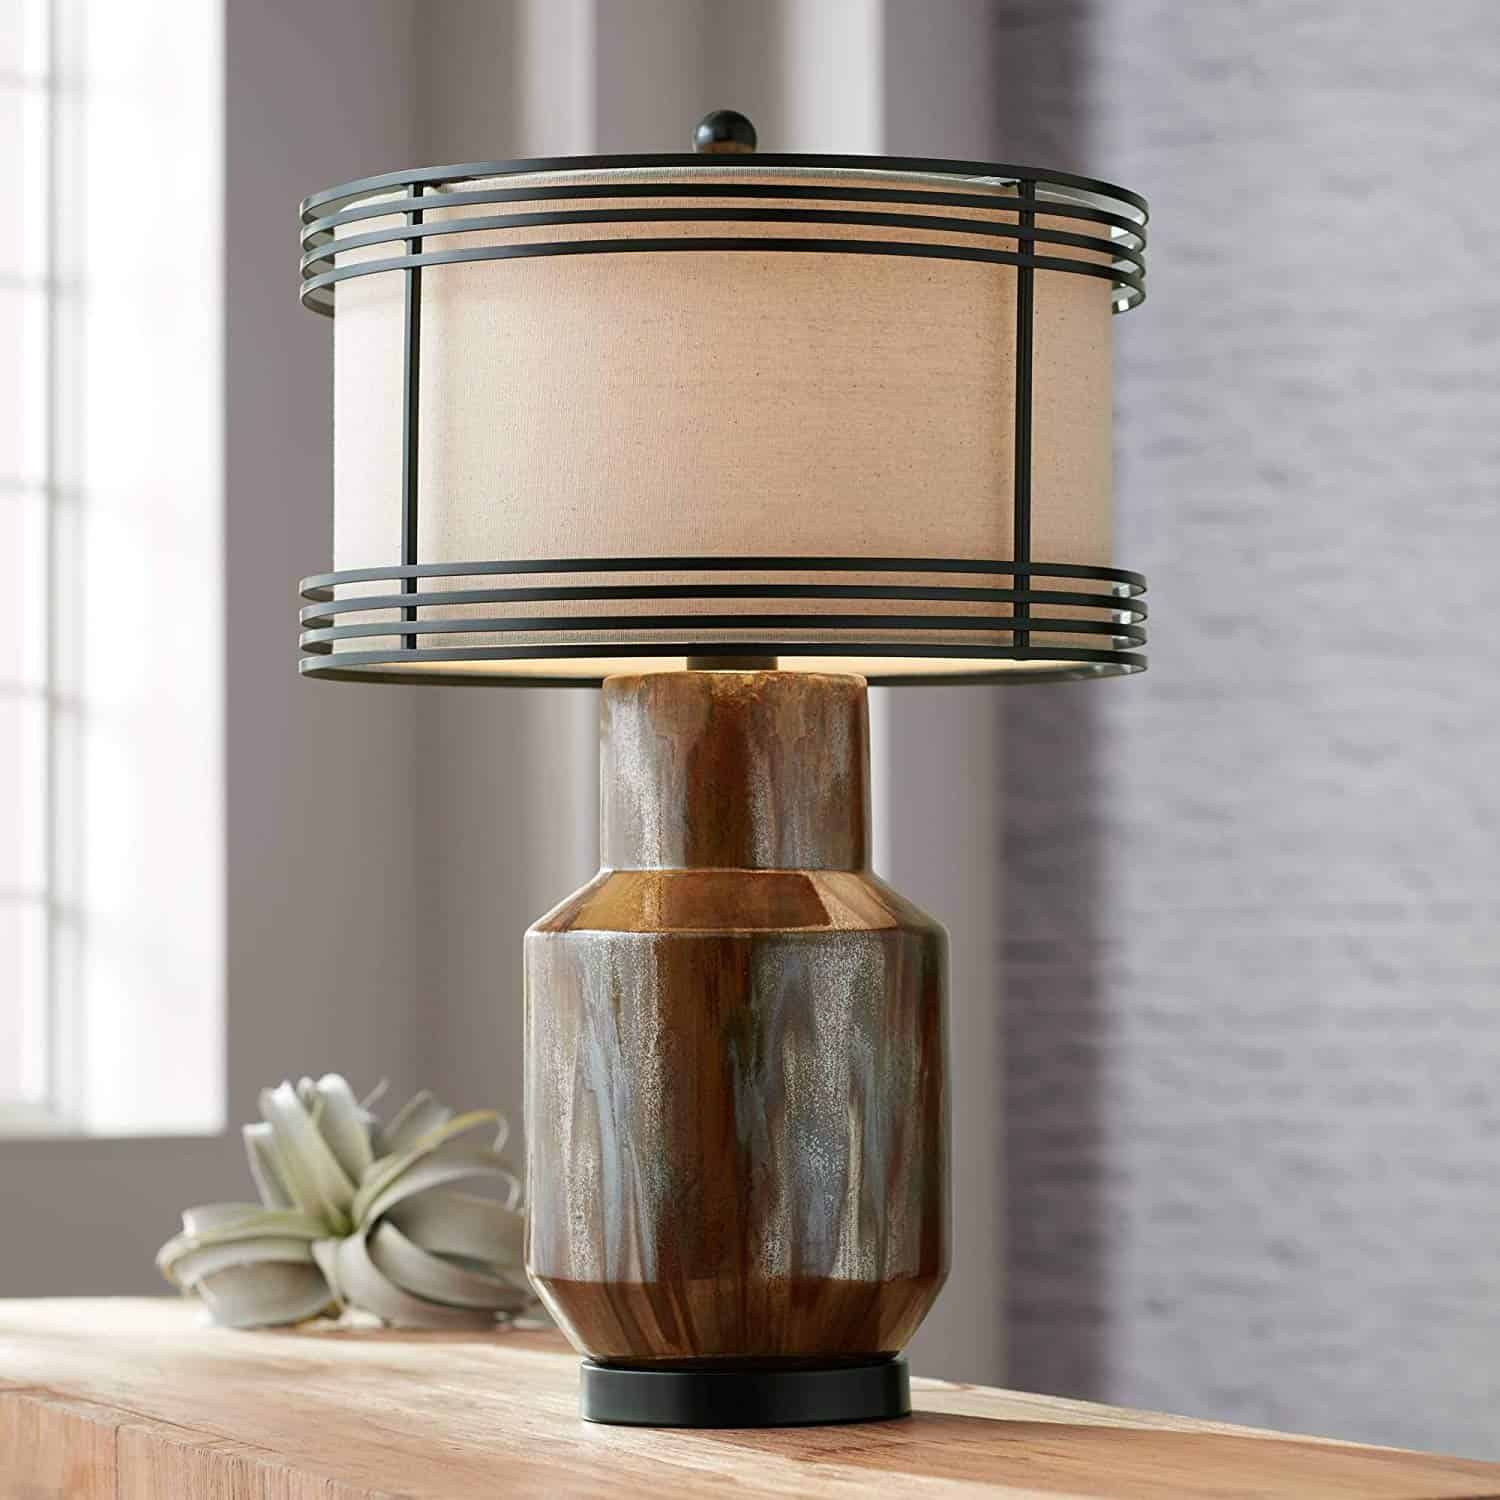 Arthur Rustic Chic Table Lamp Copper